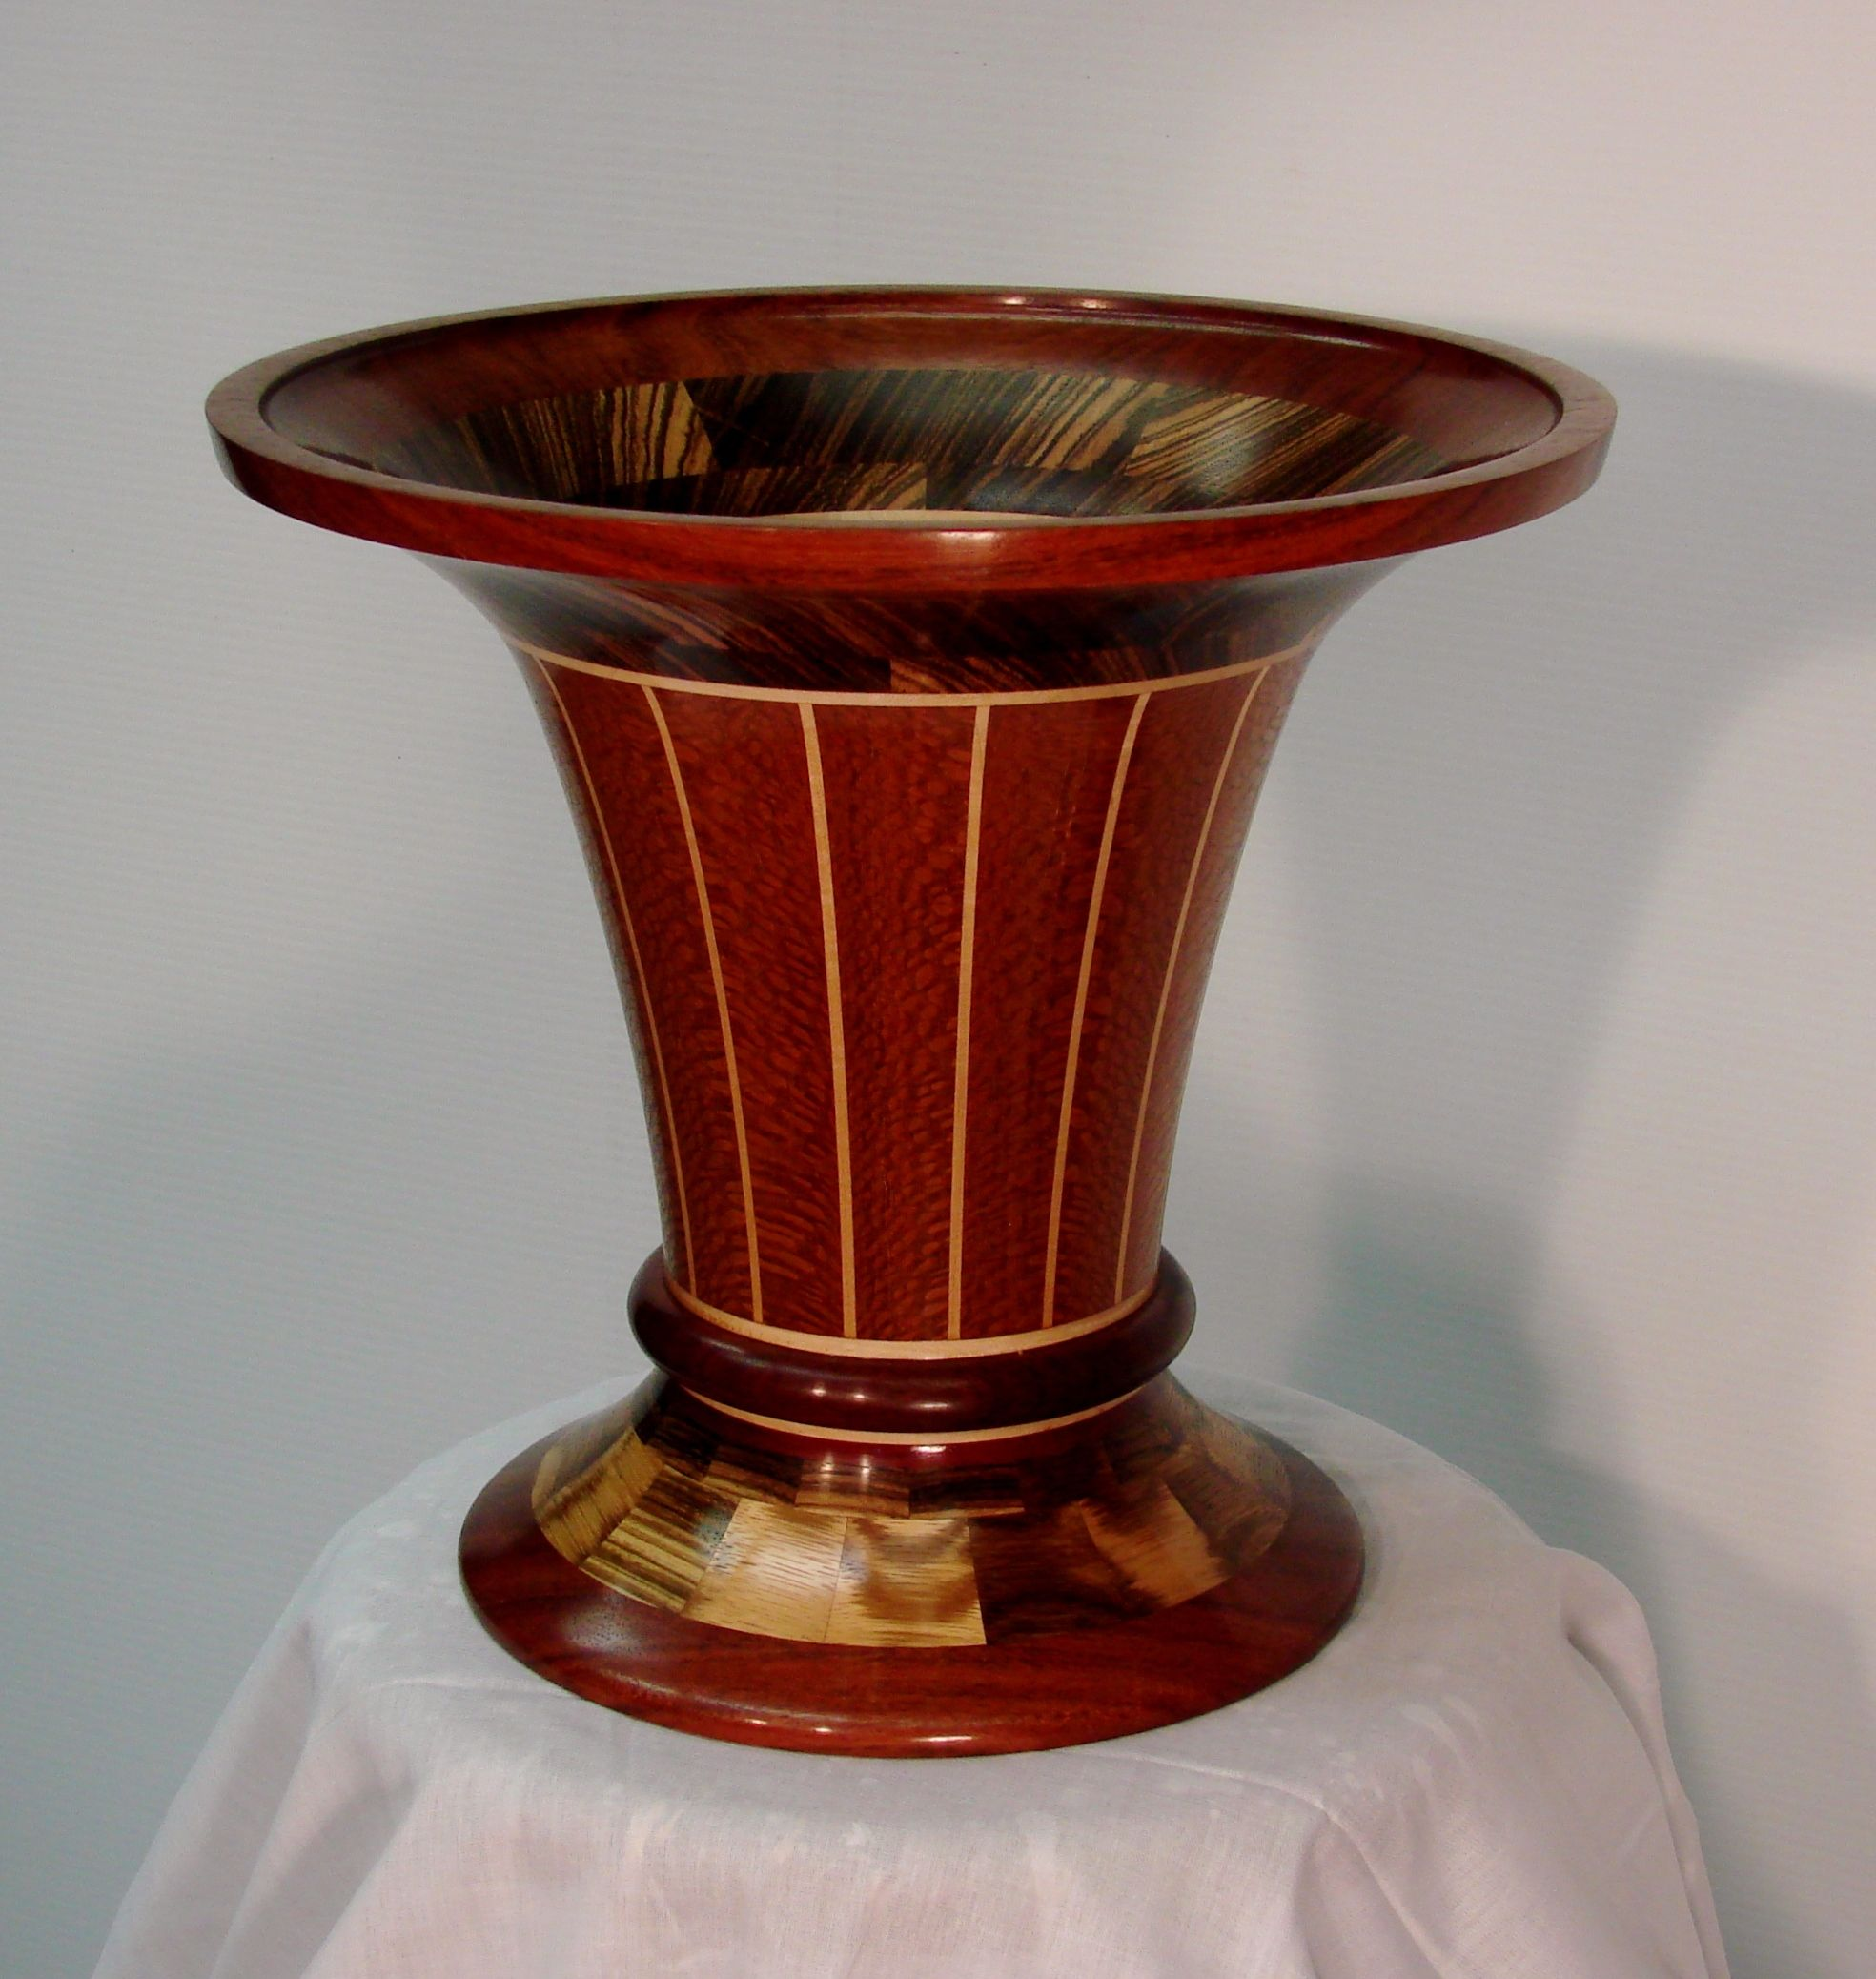 Lathe turned segmented wood vase 14 diameter by 135 high made lathe turned segmented wood vase 14 diameter by 135 high made from reviewsmspy